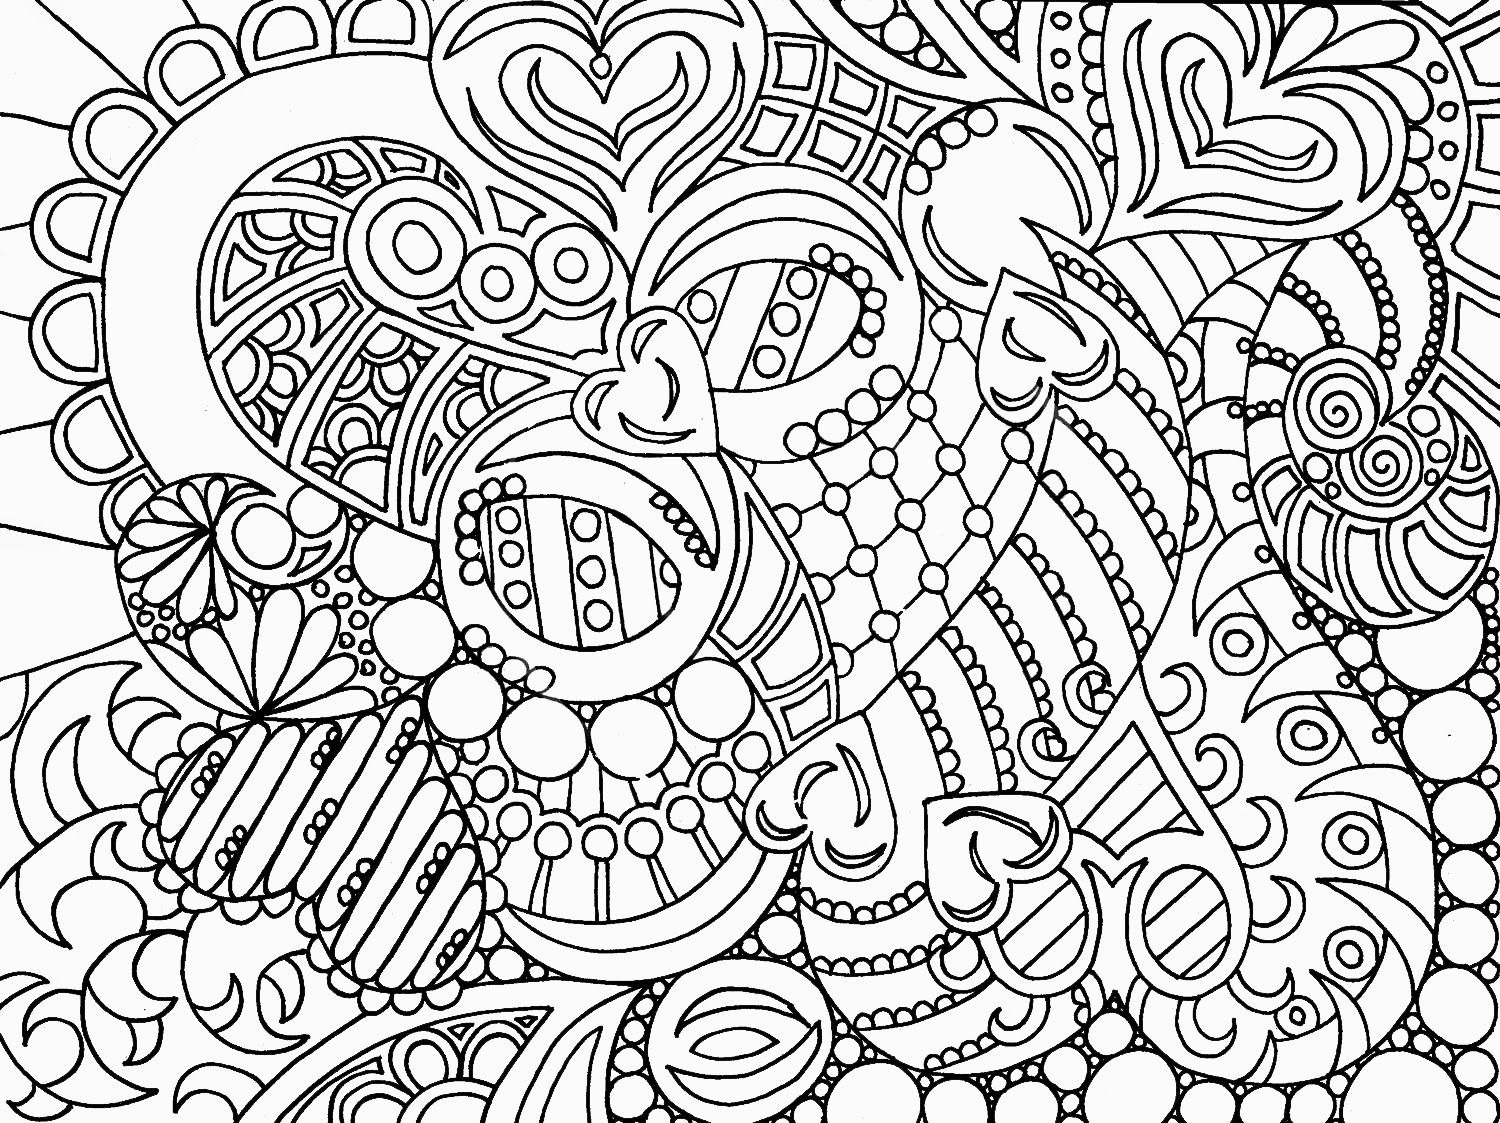 Free coloring pages online adults - Abstract Coloring Pages Free Online Printable Coloring Pages Sheets For Kids Get The Latest Free Abstract Coloring Pages Images Favorite Coloring Pages